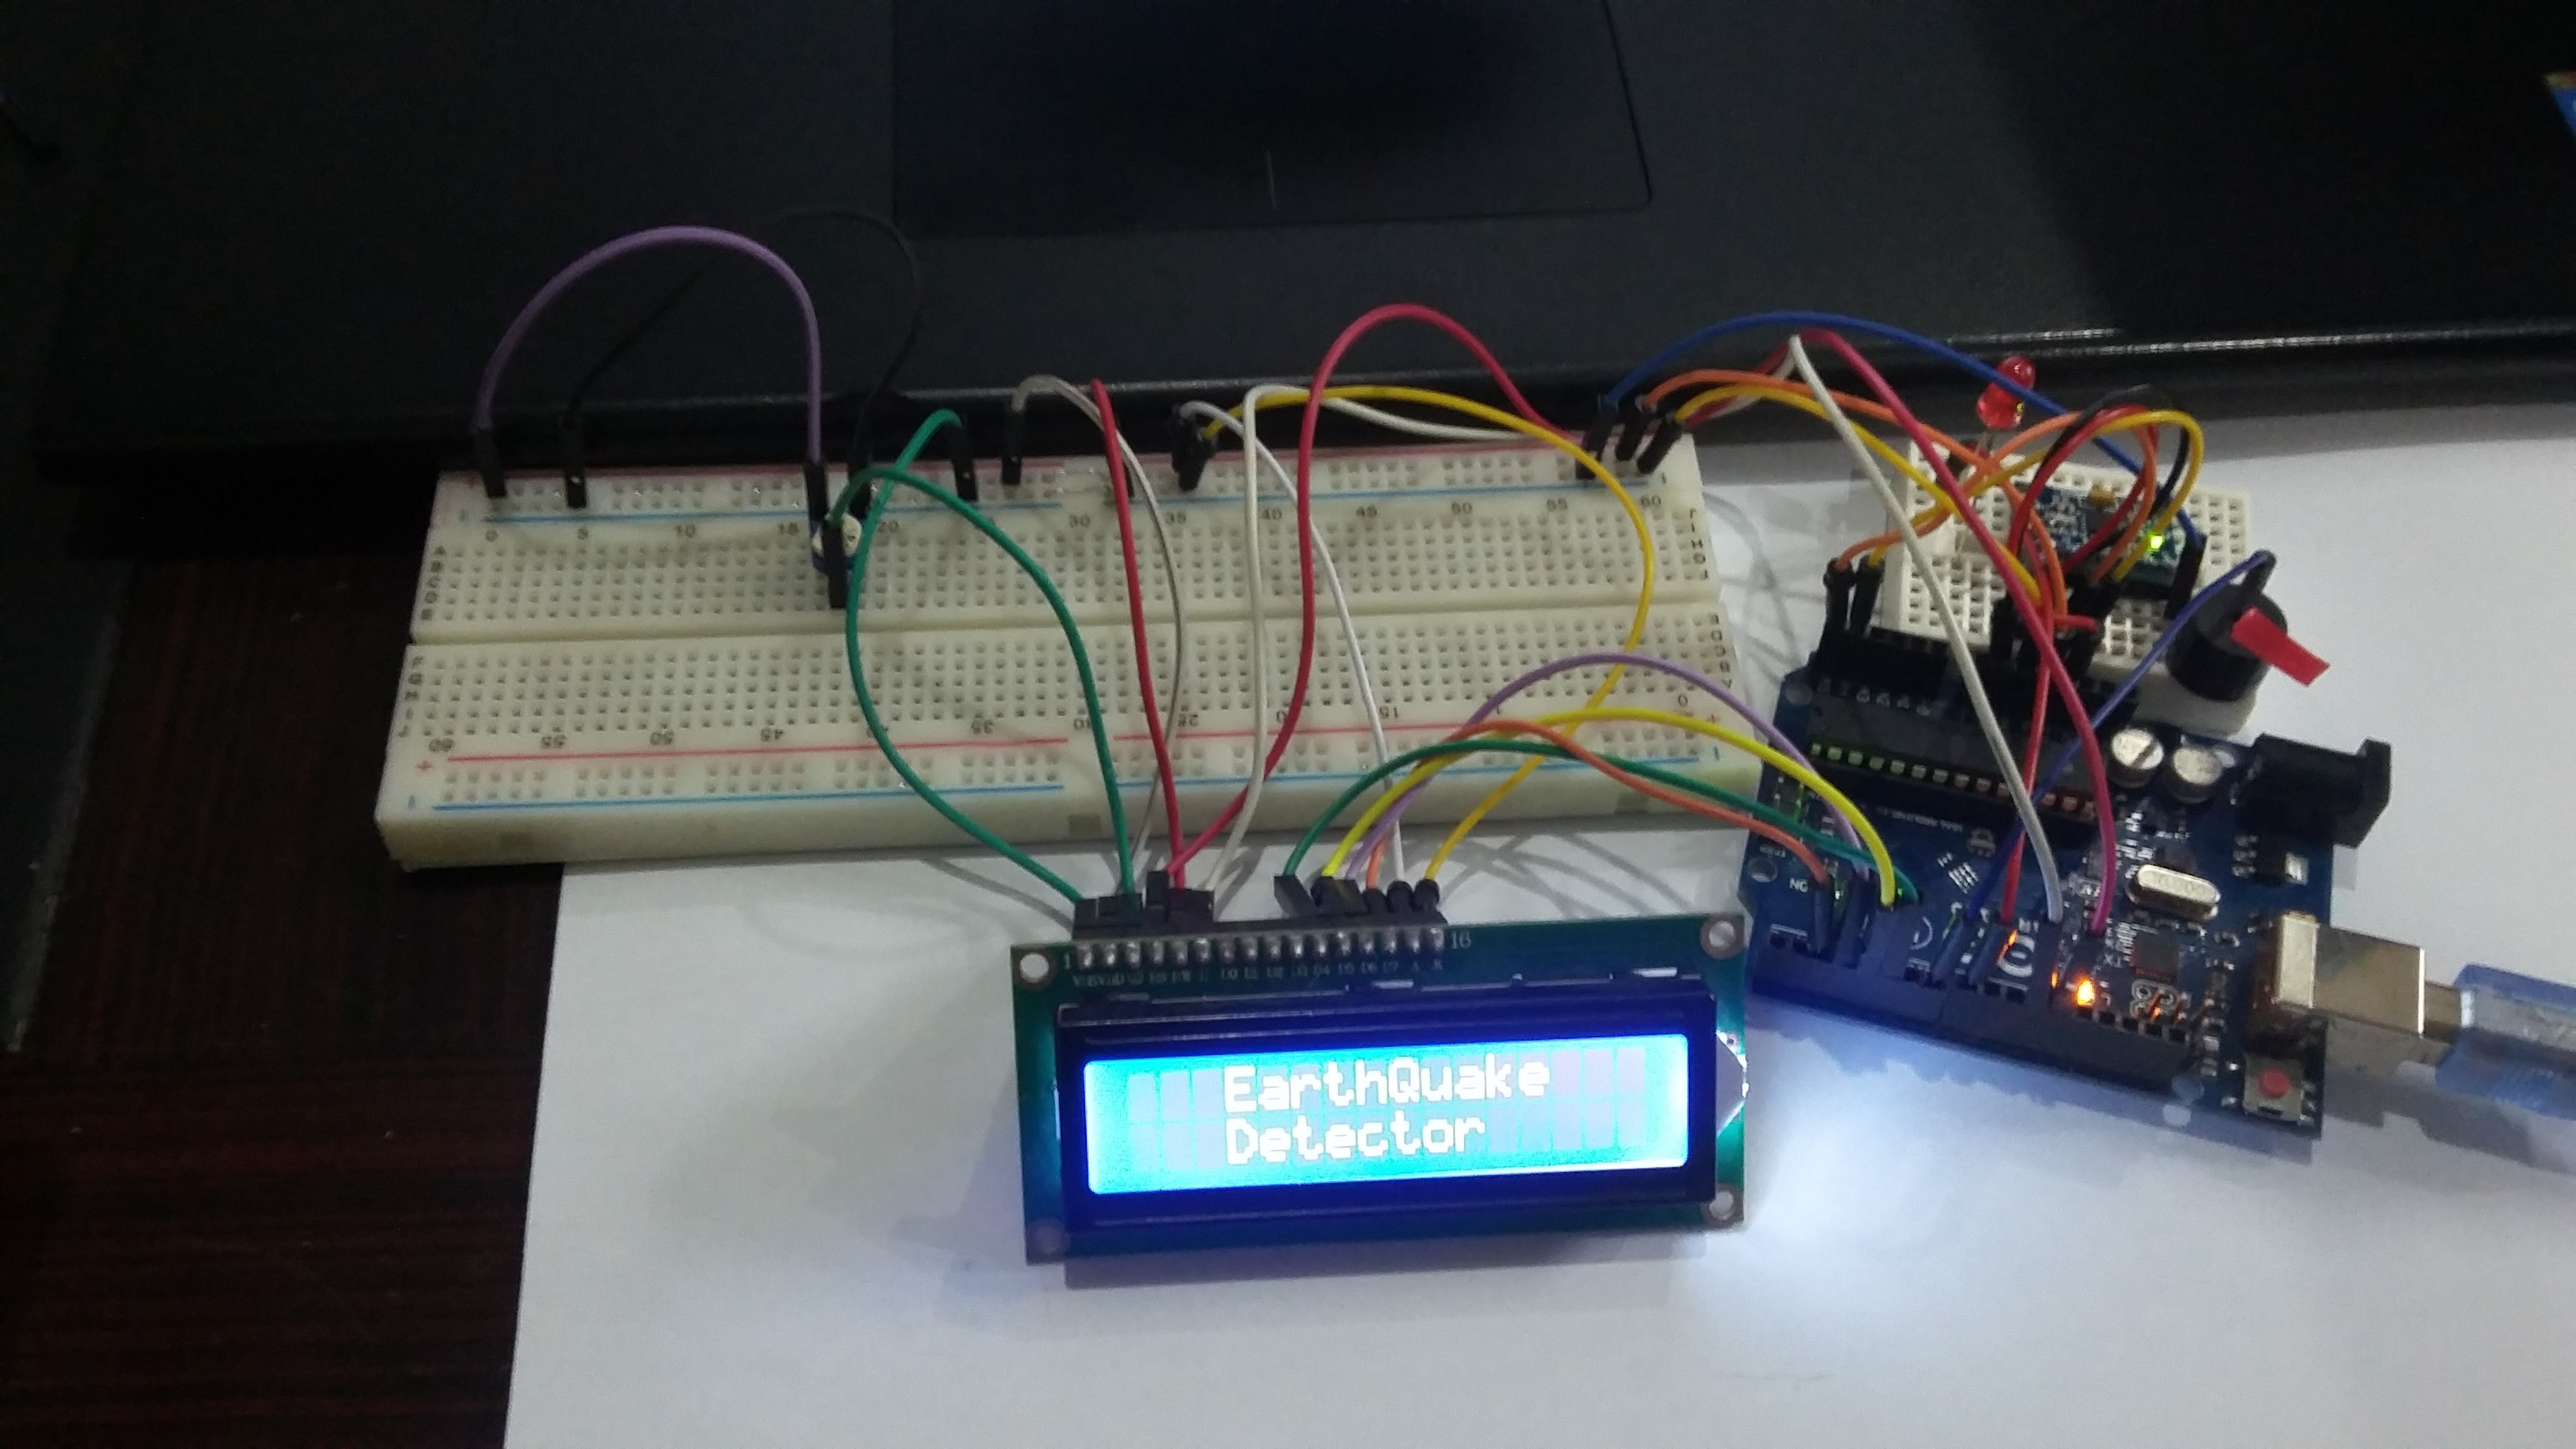 Earthquake Detector Using Arduino And Mpu 6050 8051 Microcontroller Based Digital Alarm Clok With Thermometer Circuit